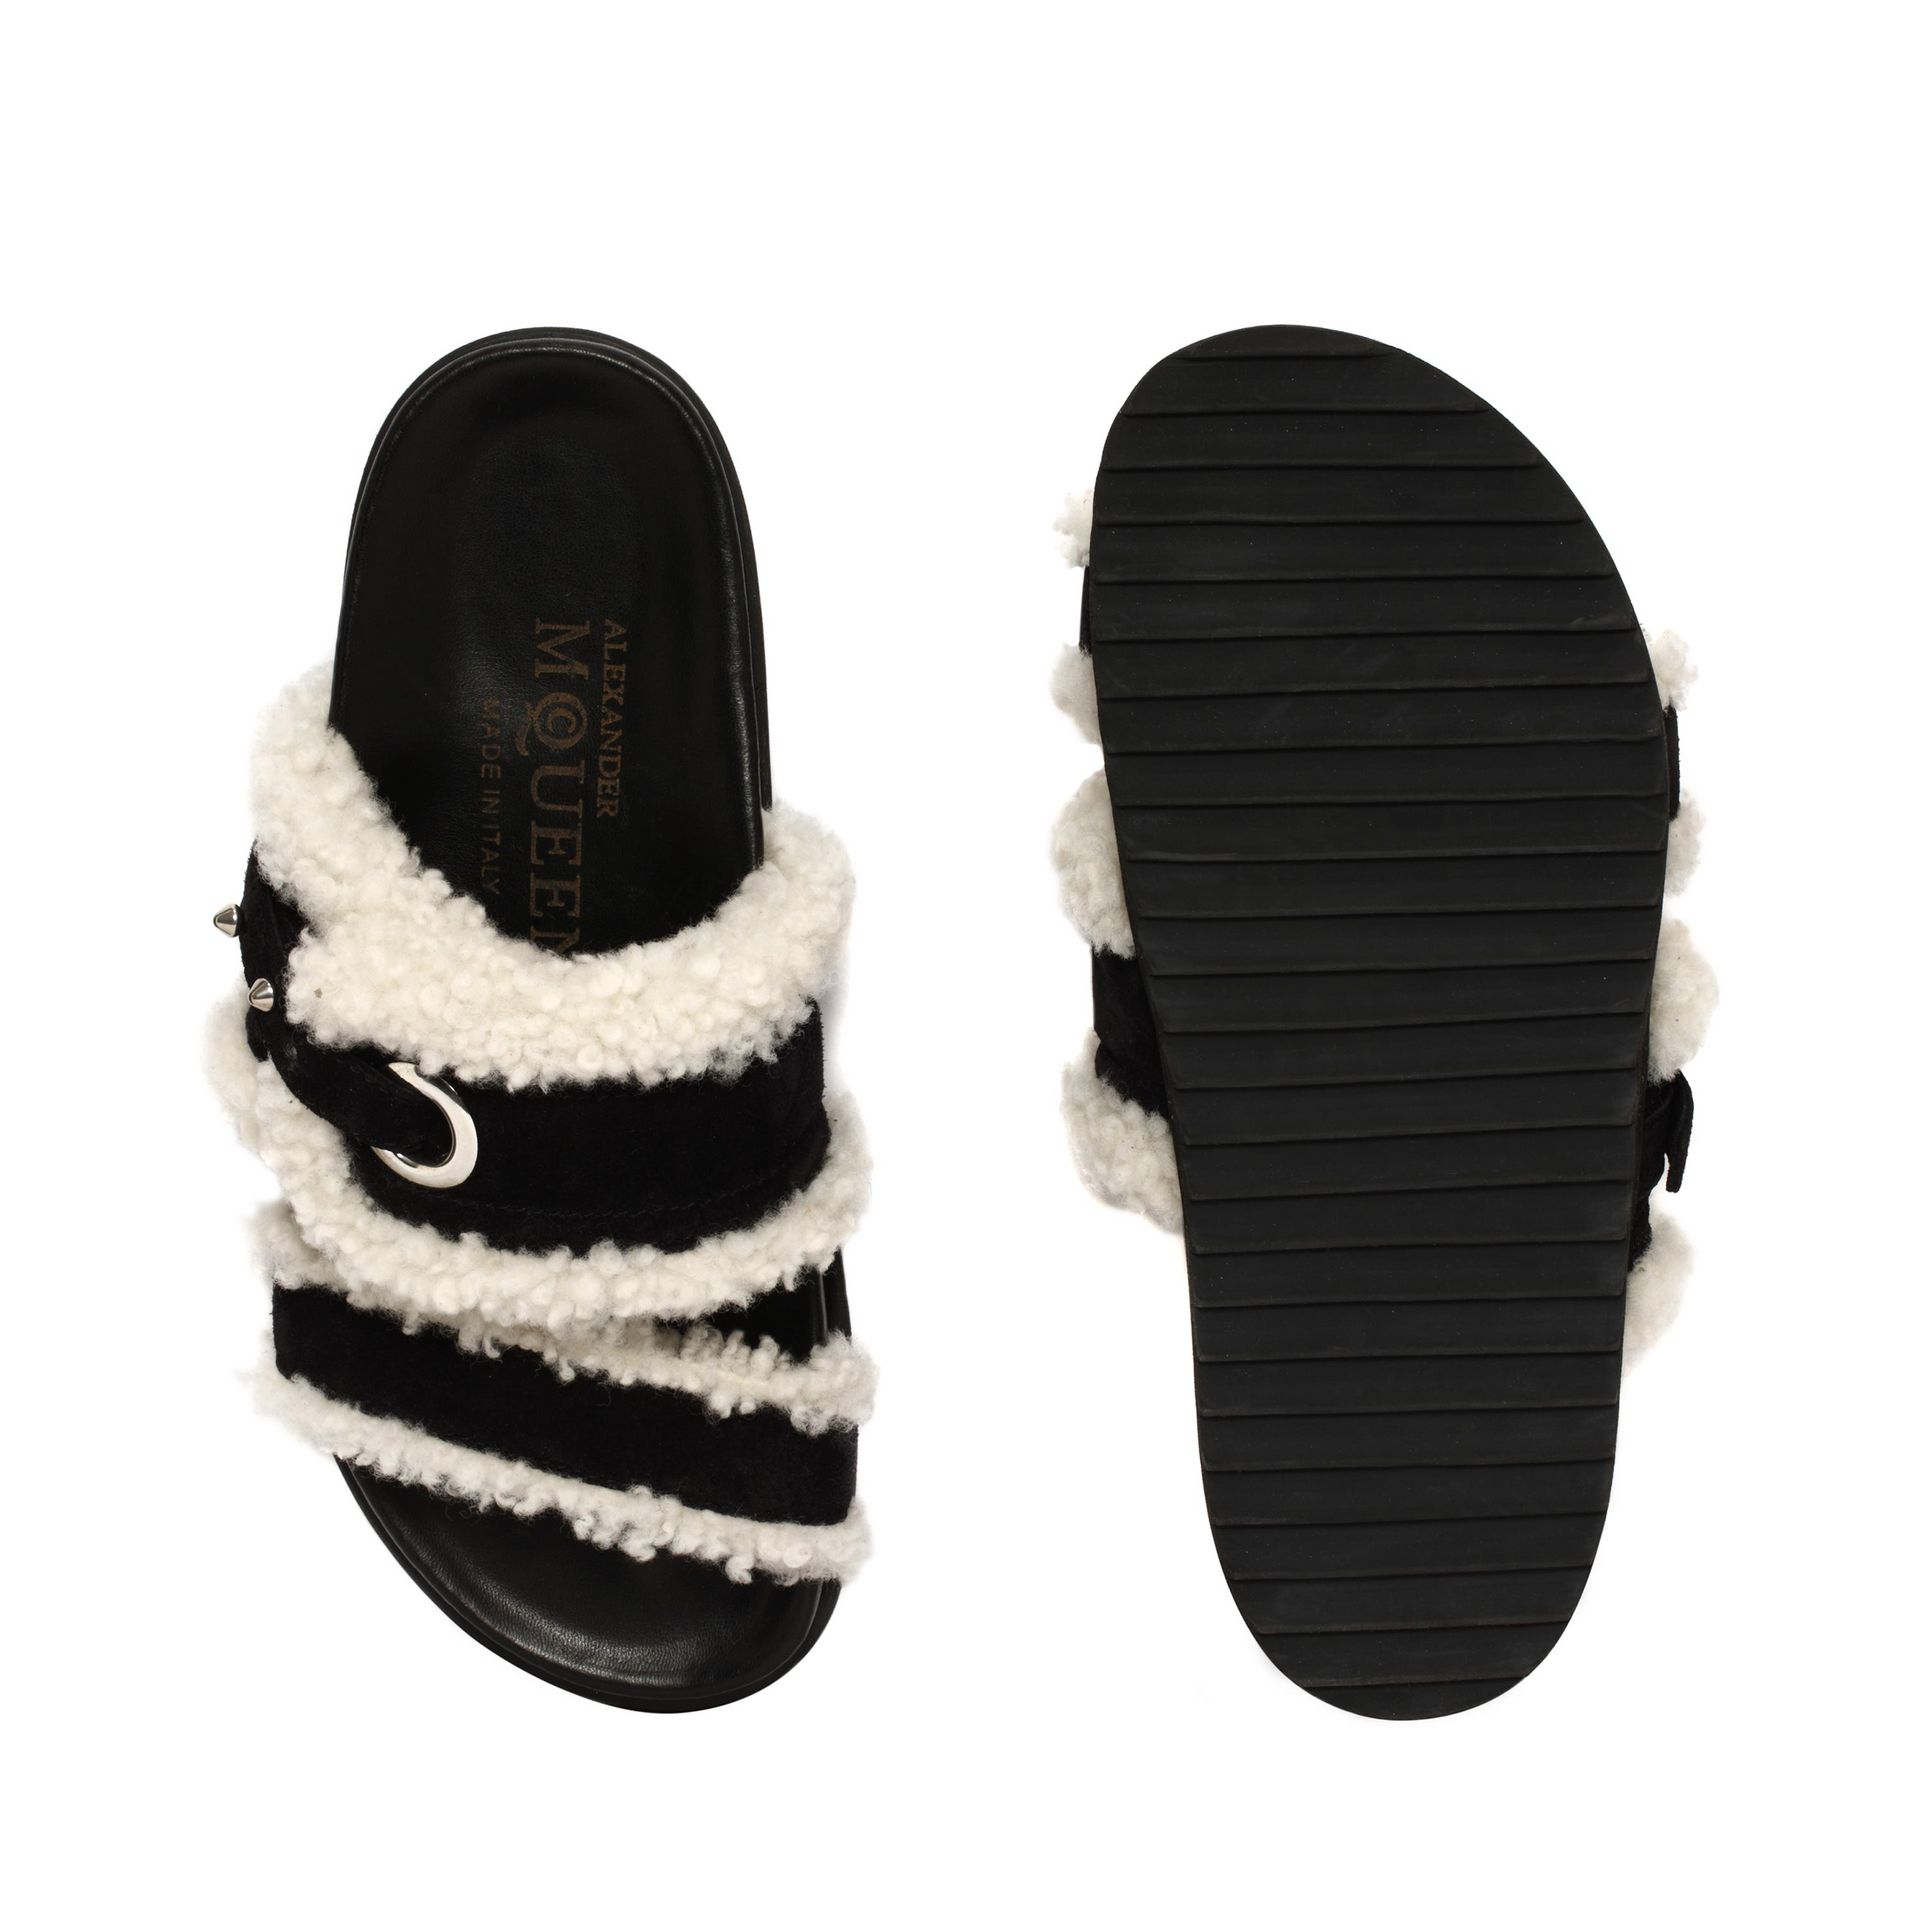 Suede and shearling sandals Alexander McQueen Collections Cheap Online Discount Pre Order In China Cheap Price New Lower Prices Order Online S0loJ00T